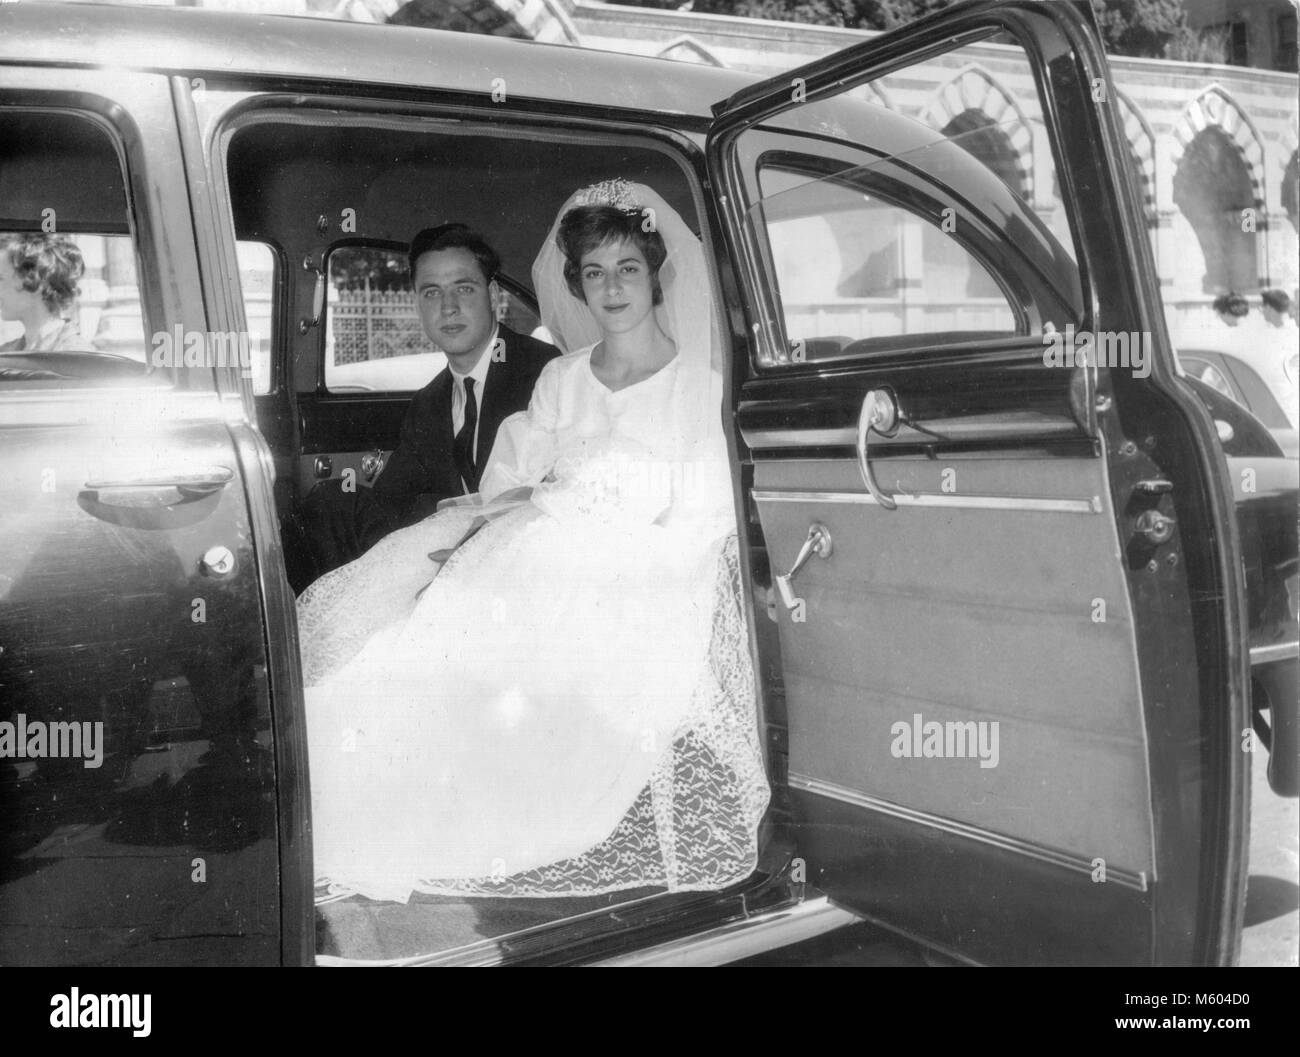 1960s 1970s wedding caucasian couple looking at camera posing inside an ancient car. Black and white shot. Italy - Stock Image